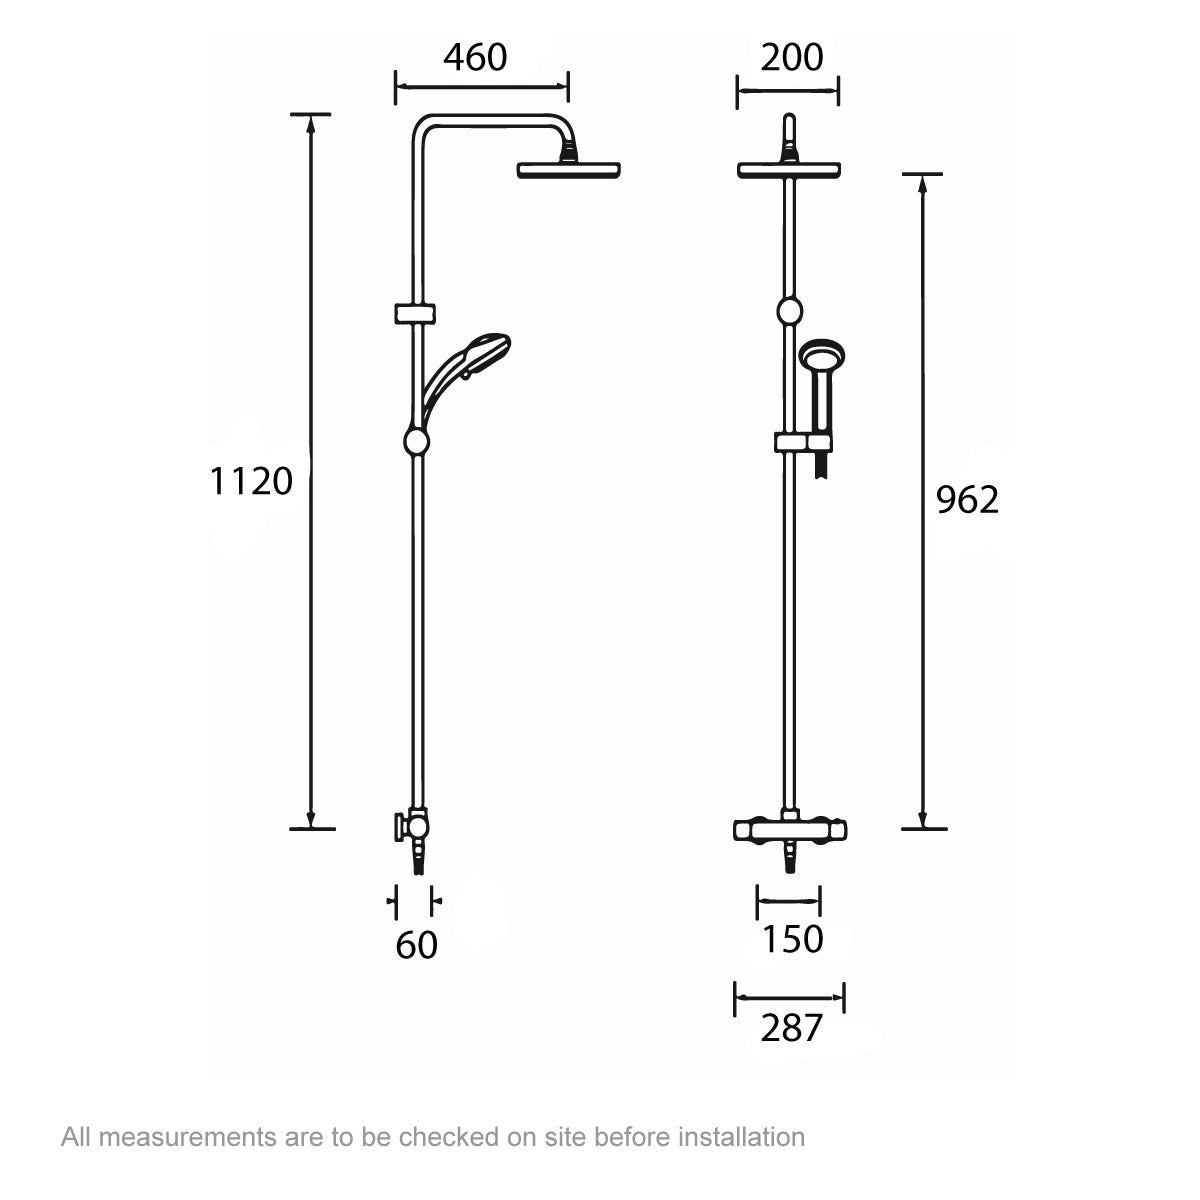 Dimensions for Bristan Carre thermostatic bar valve shower system